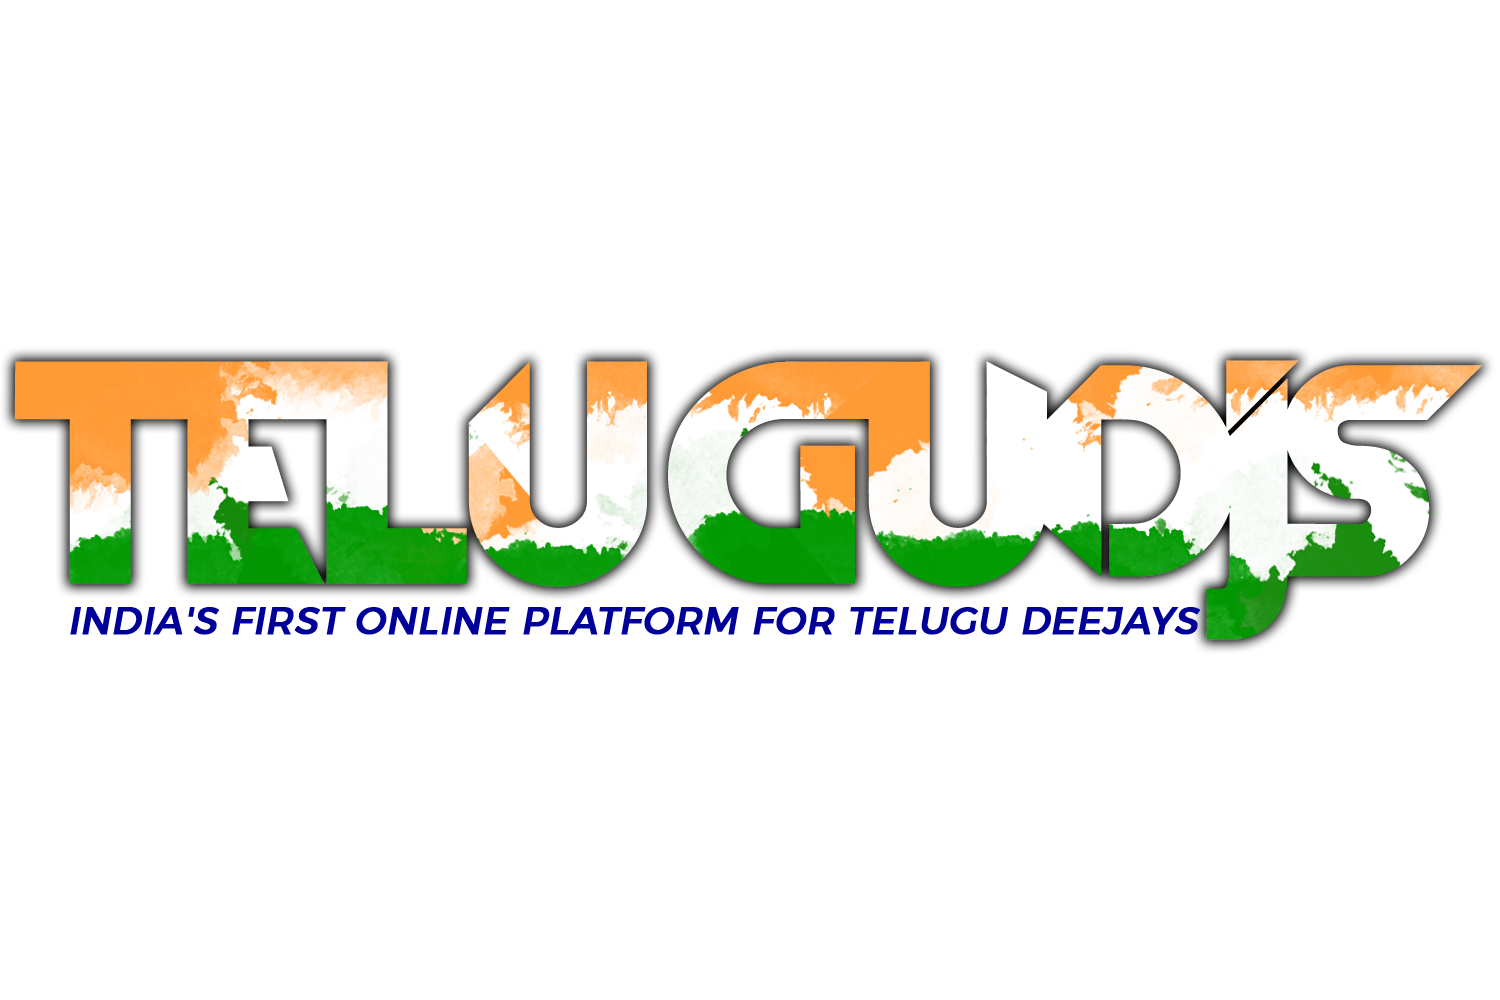 Telugudjs.com - India's No.1 online Promoters for Telugu Deejays